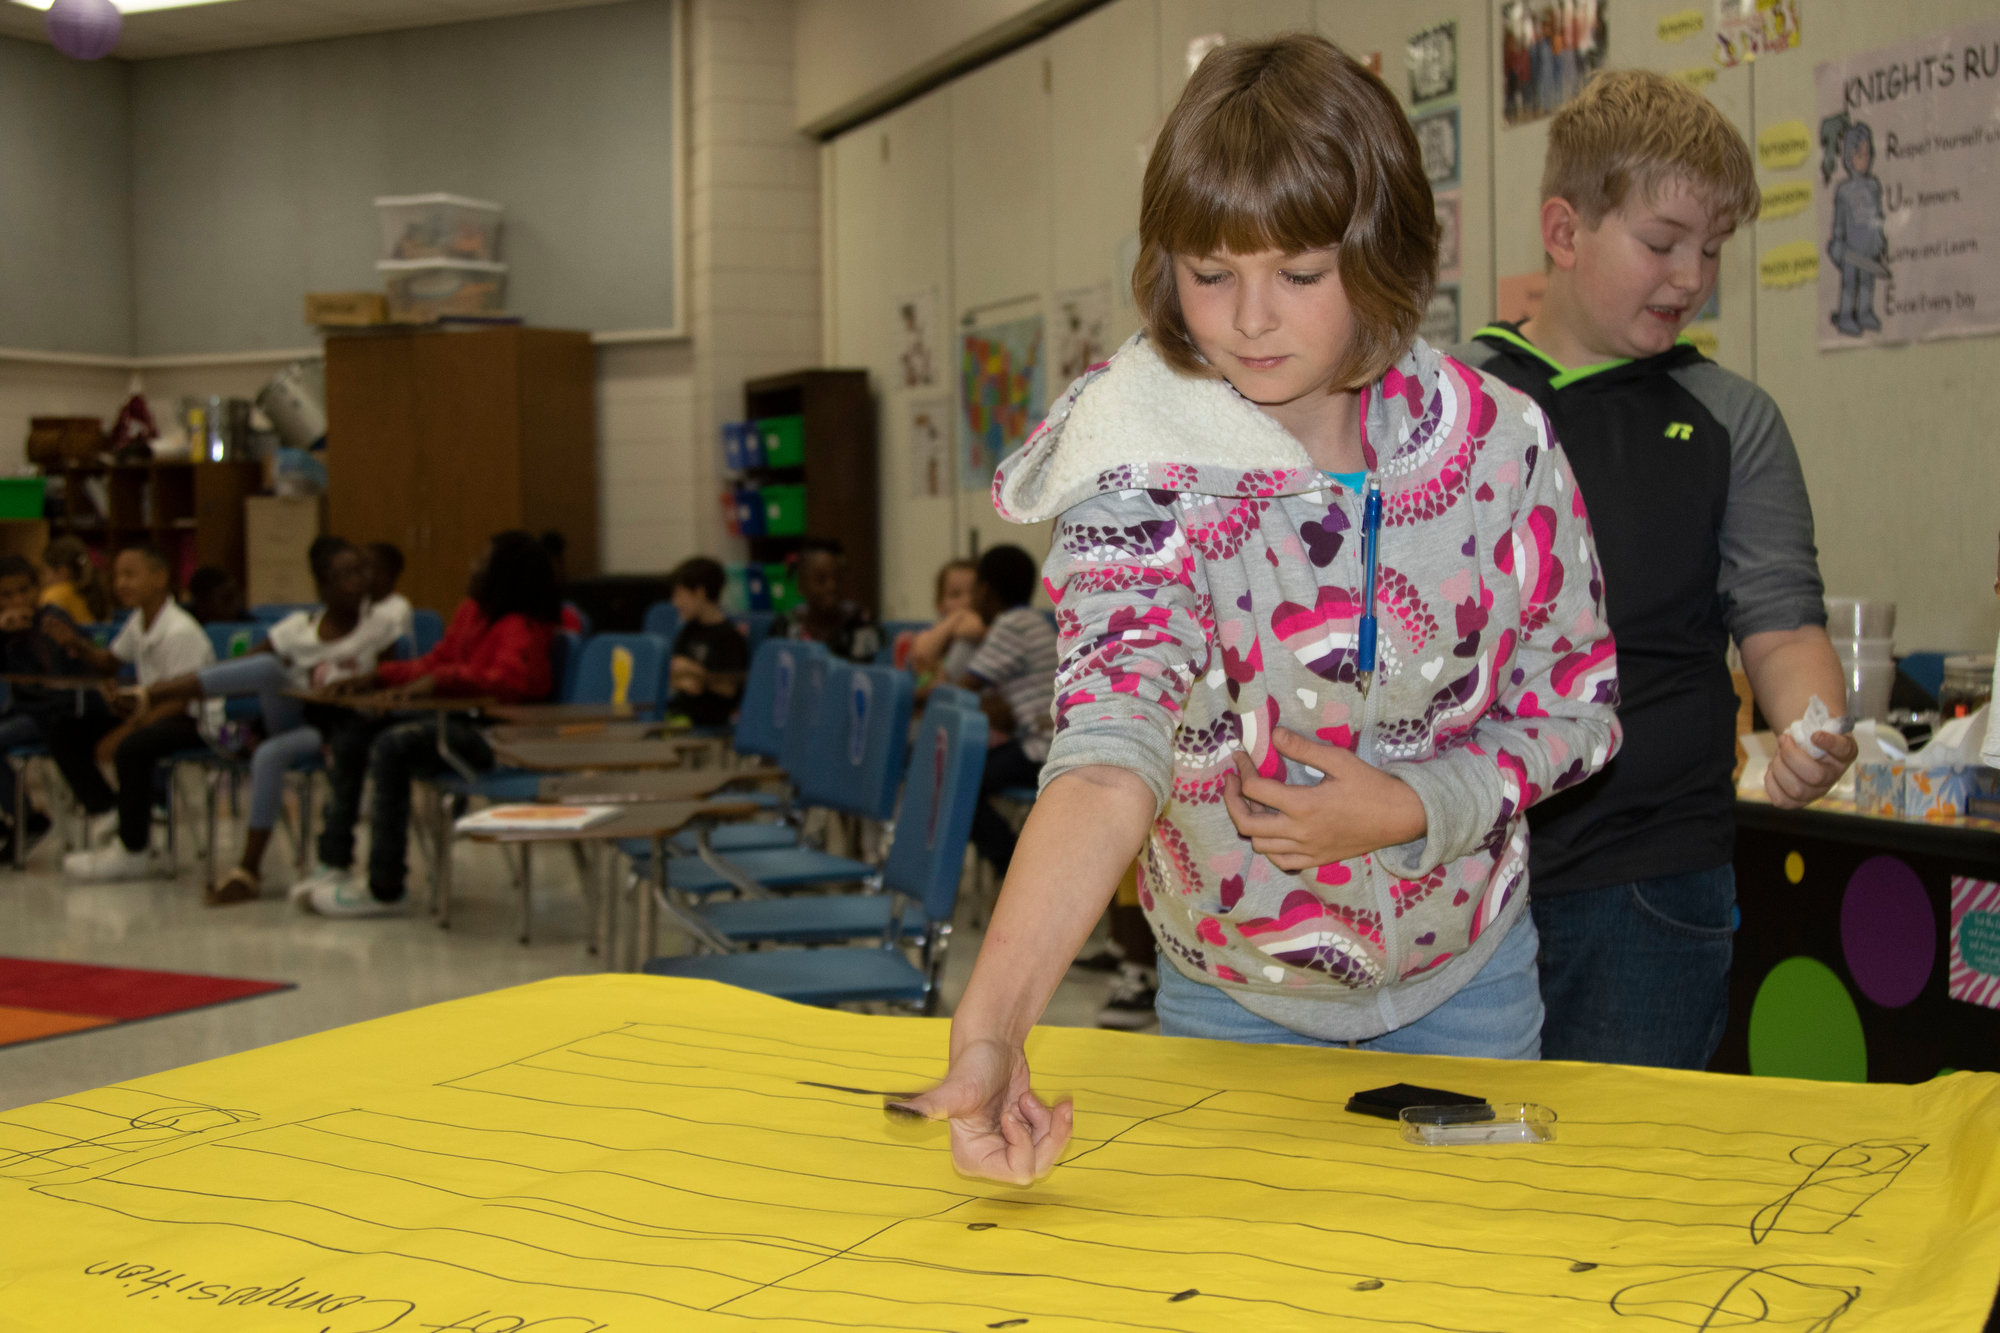 Kingsbury Elementary students make their mark in music class with fingerprint dots.